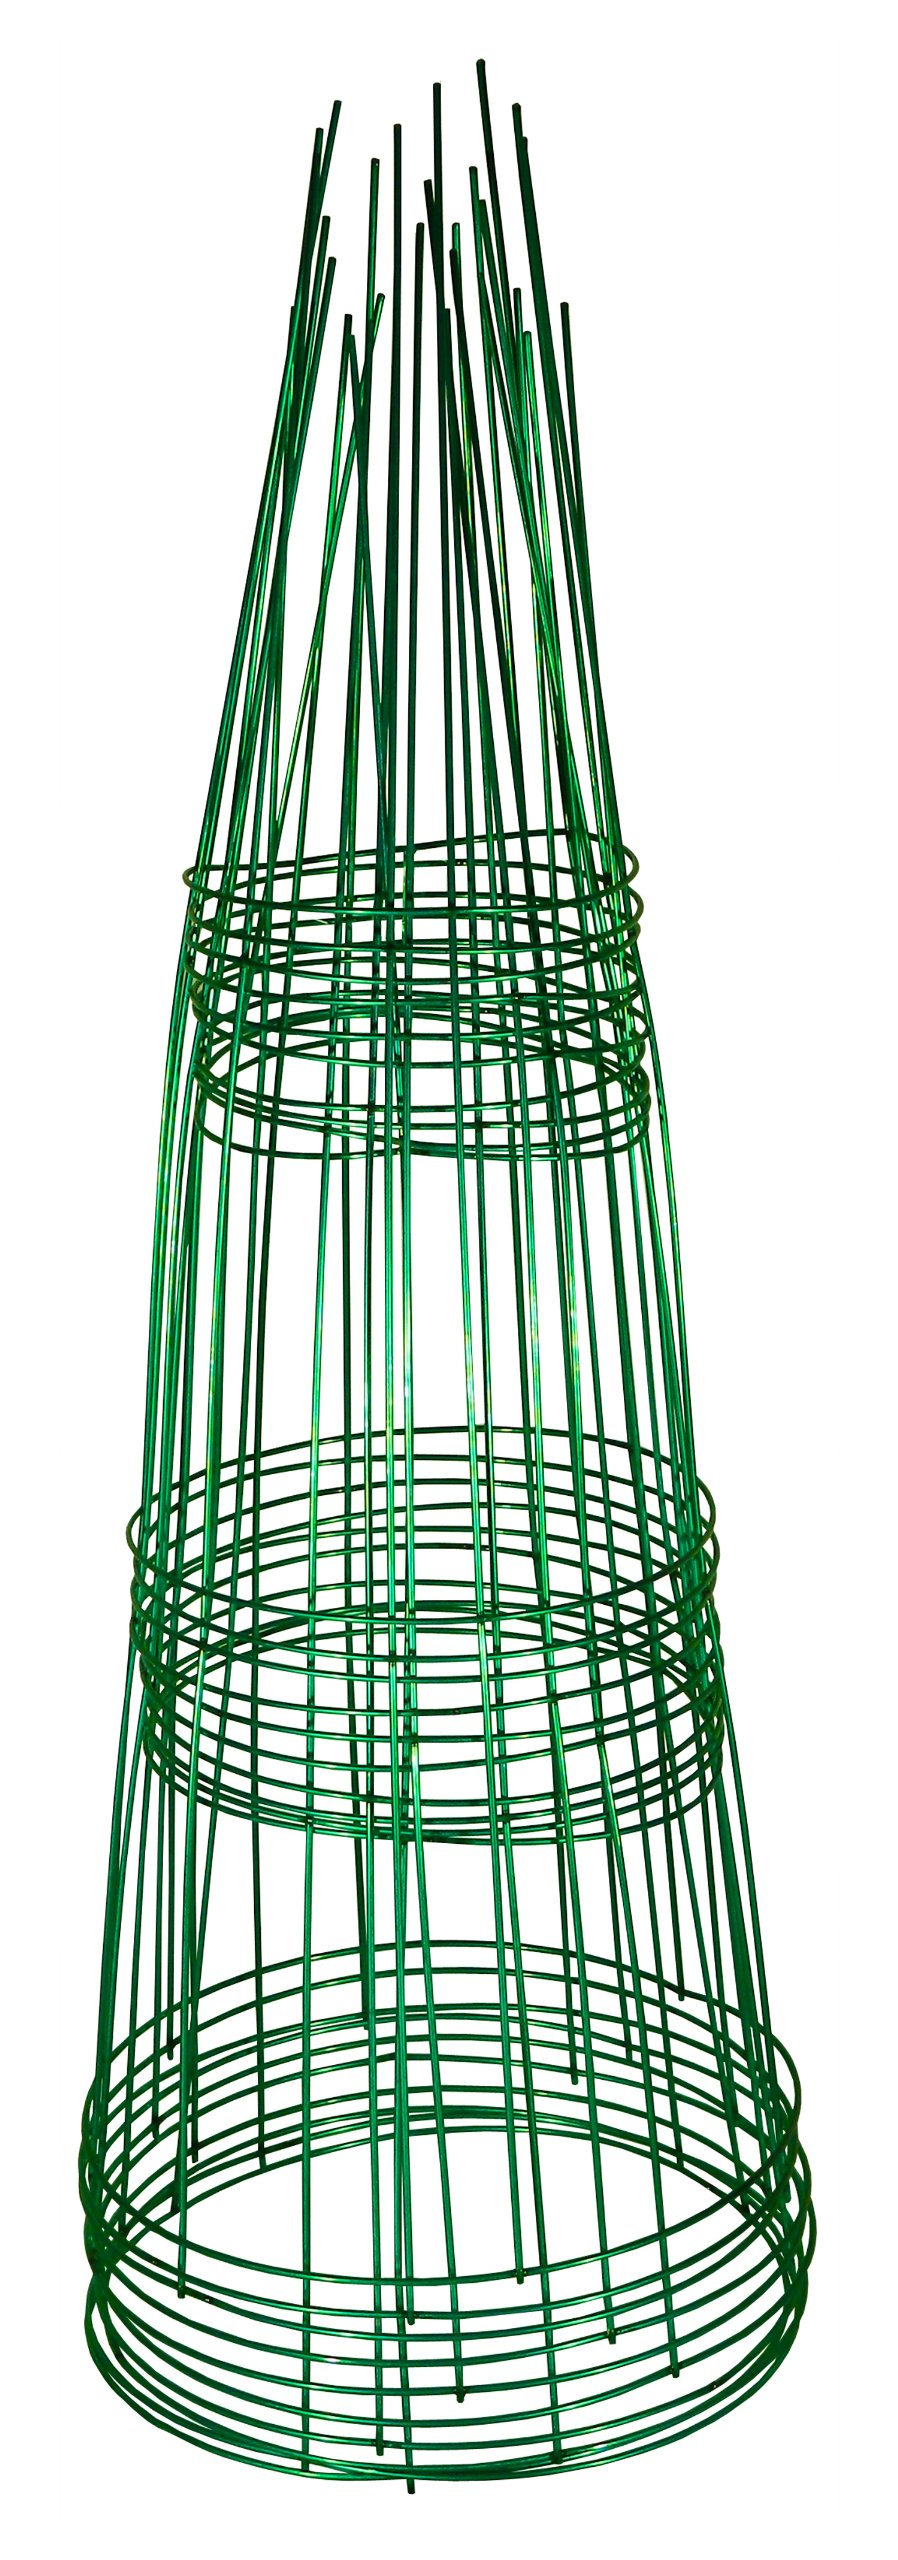 Glamos 220500 10-Pack Blazing Gemz Plant Support, 12 by 33-Inch, Emerald Green (Discontinued by Manufacturer)